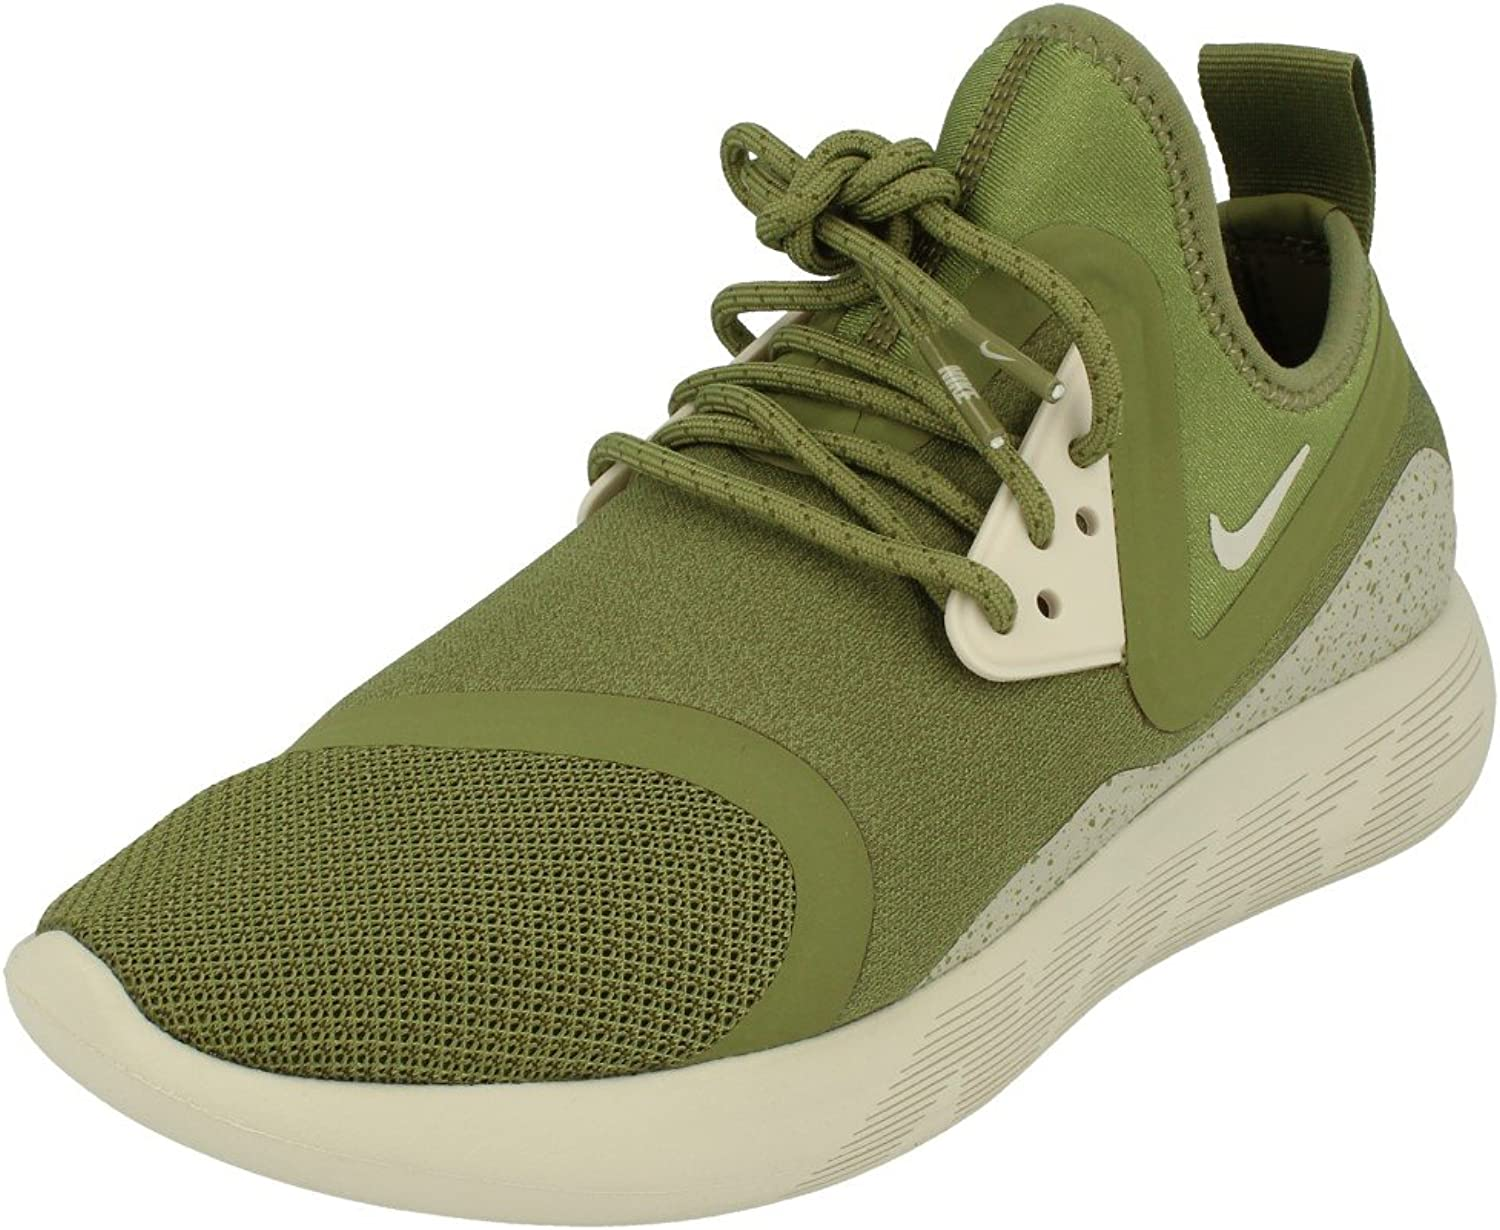 Nike Lunarcharge Essential Mens Running Trainers 923619 Sneakers shoes (UK 6.5 US 7.5 EU 40.5, Palm Green Bone Volt 307)